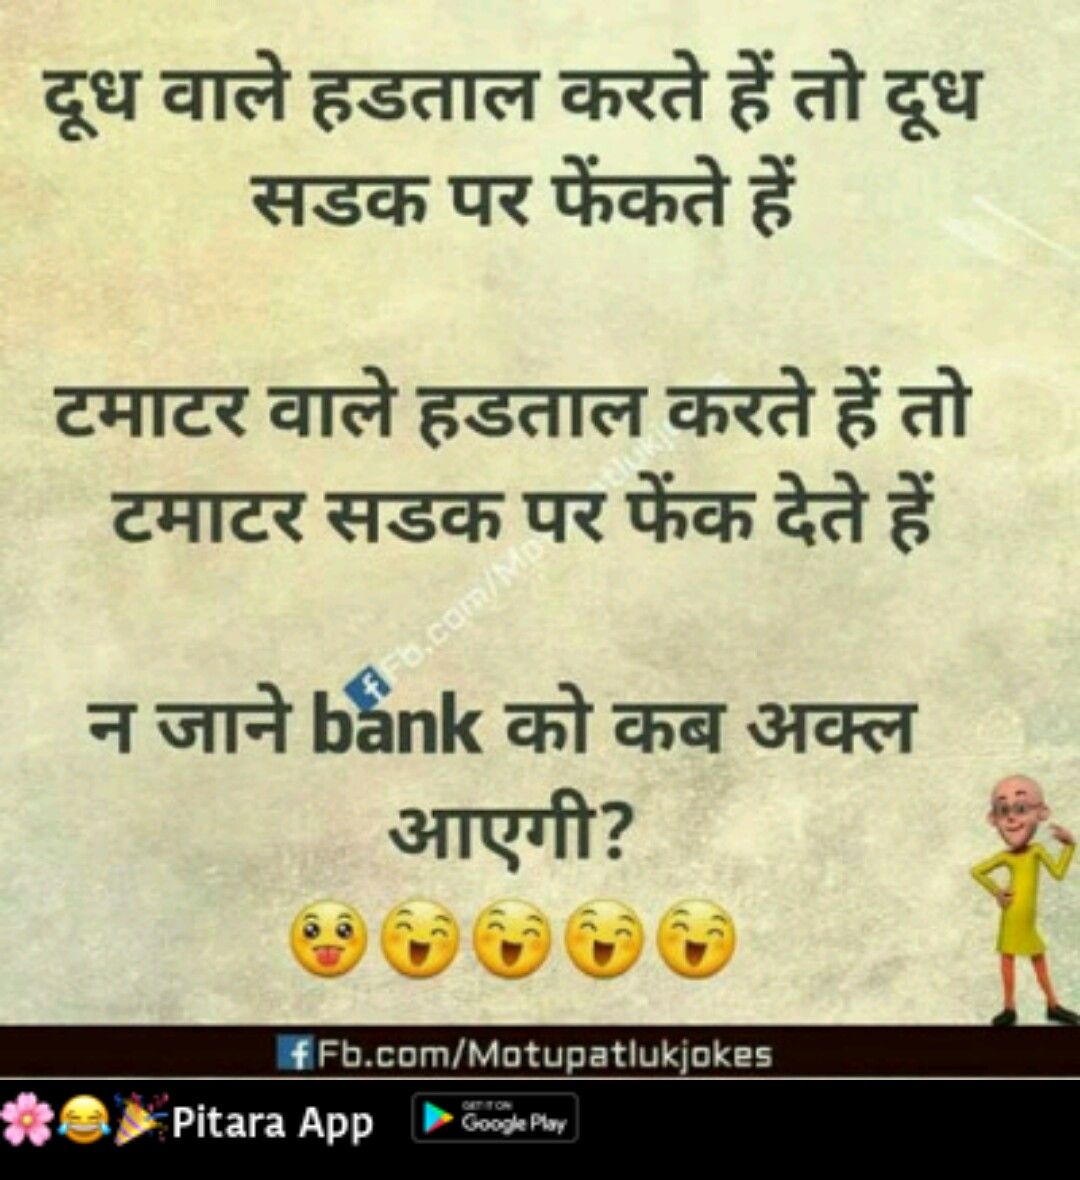 Pin By Sanjana V Singh On Lol Funny Quotes For Whatsapp Jokes Quotes Funny Quotes